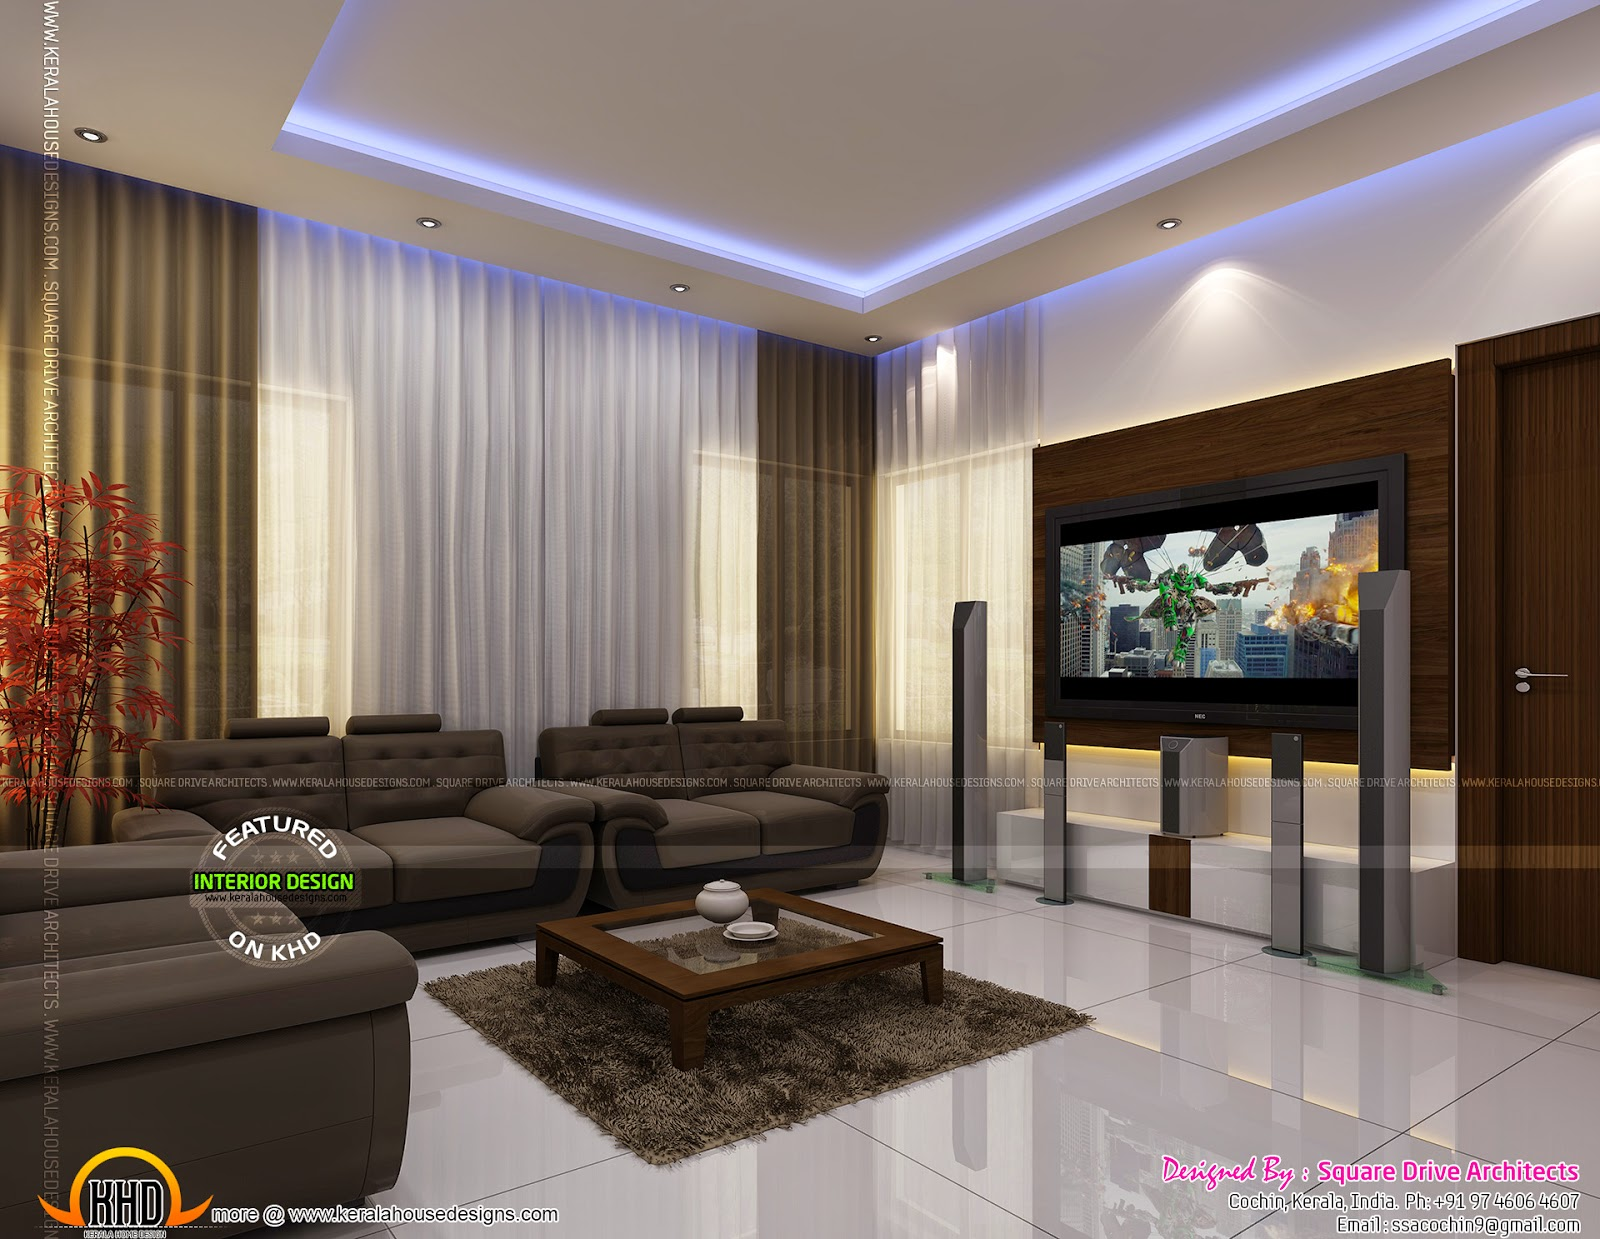 Home interiors designs kerala home design and floor plans for Living room designs kerala style